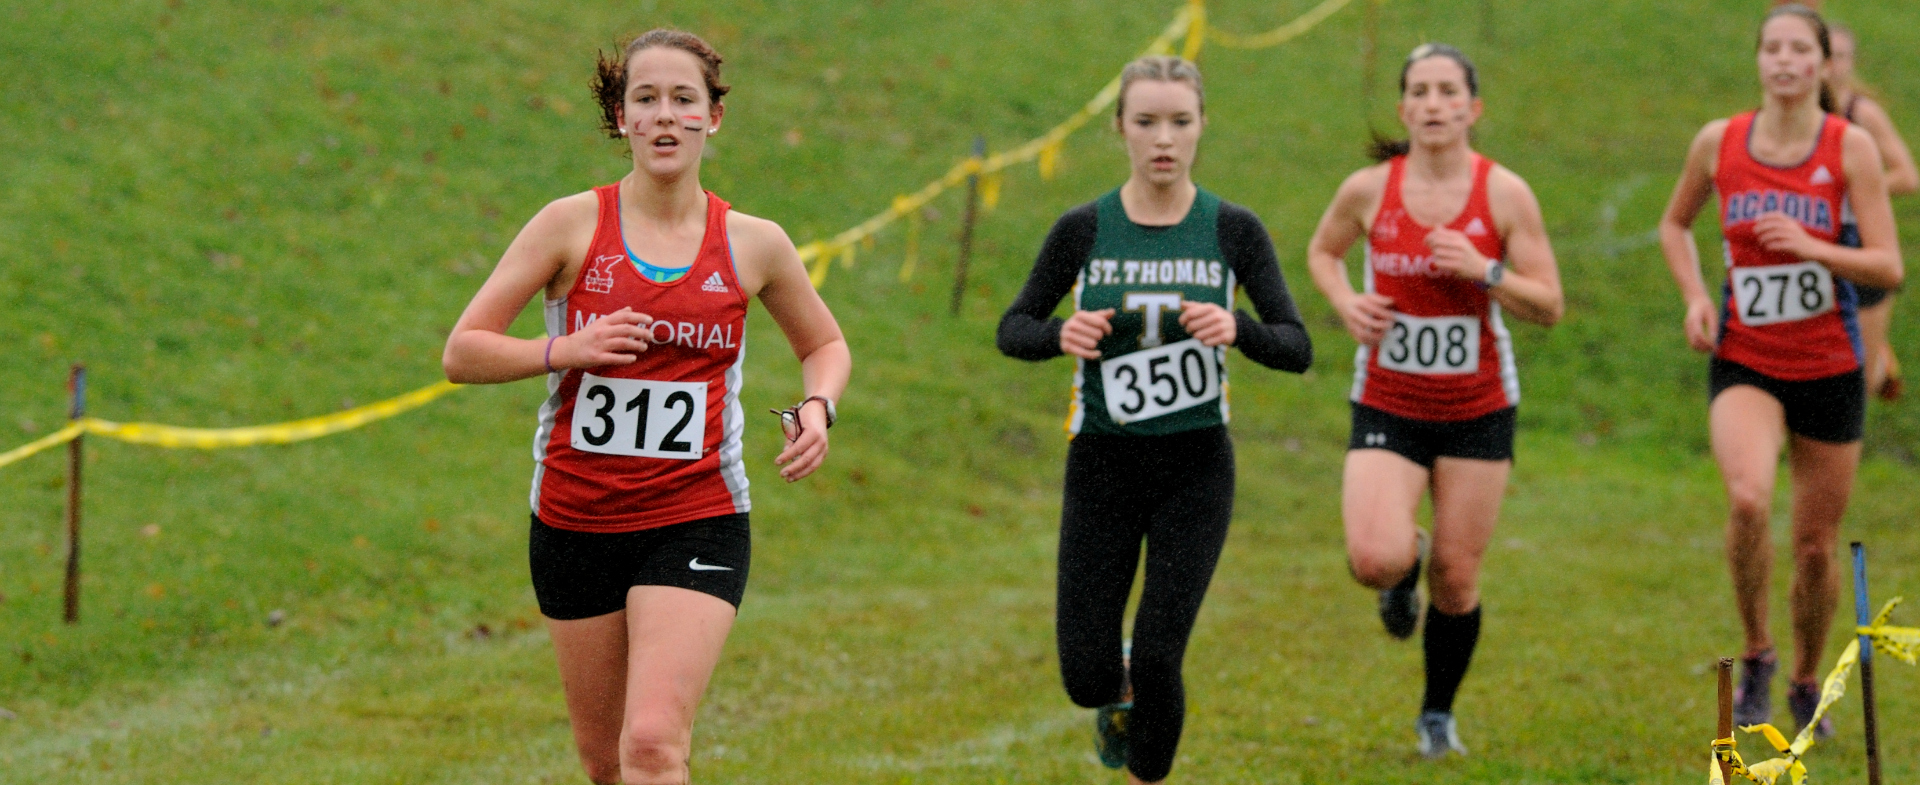 Sea-Hawks Finish 5th overall